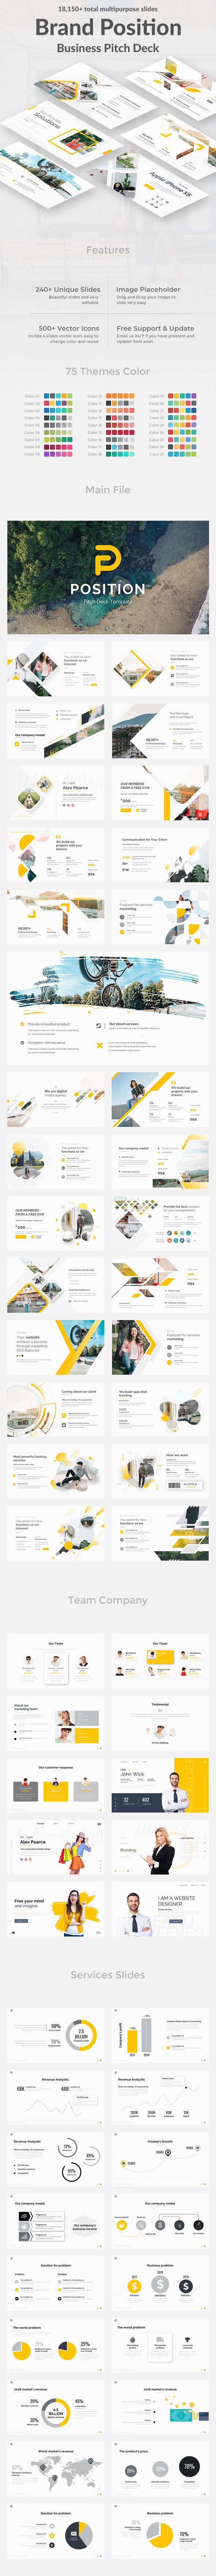 Brand Position Pitch Deck Powerpoint Template - Creative PowerPoint Templates